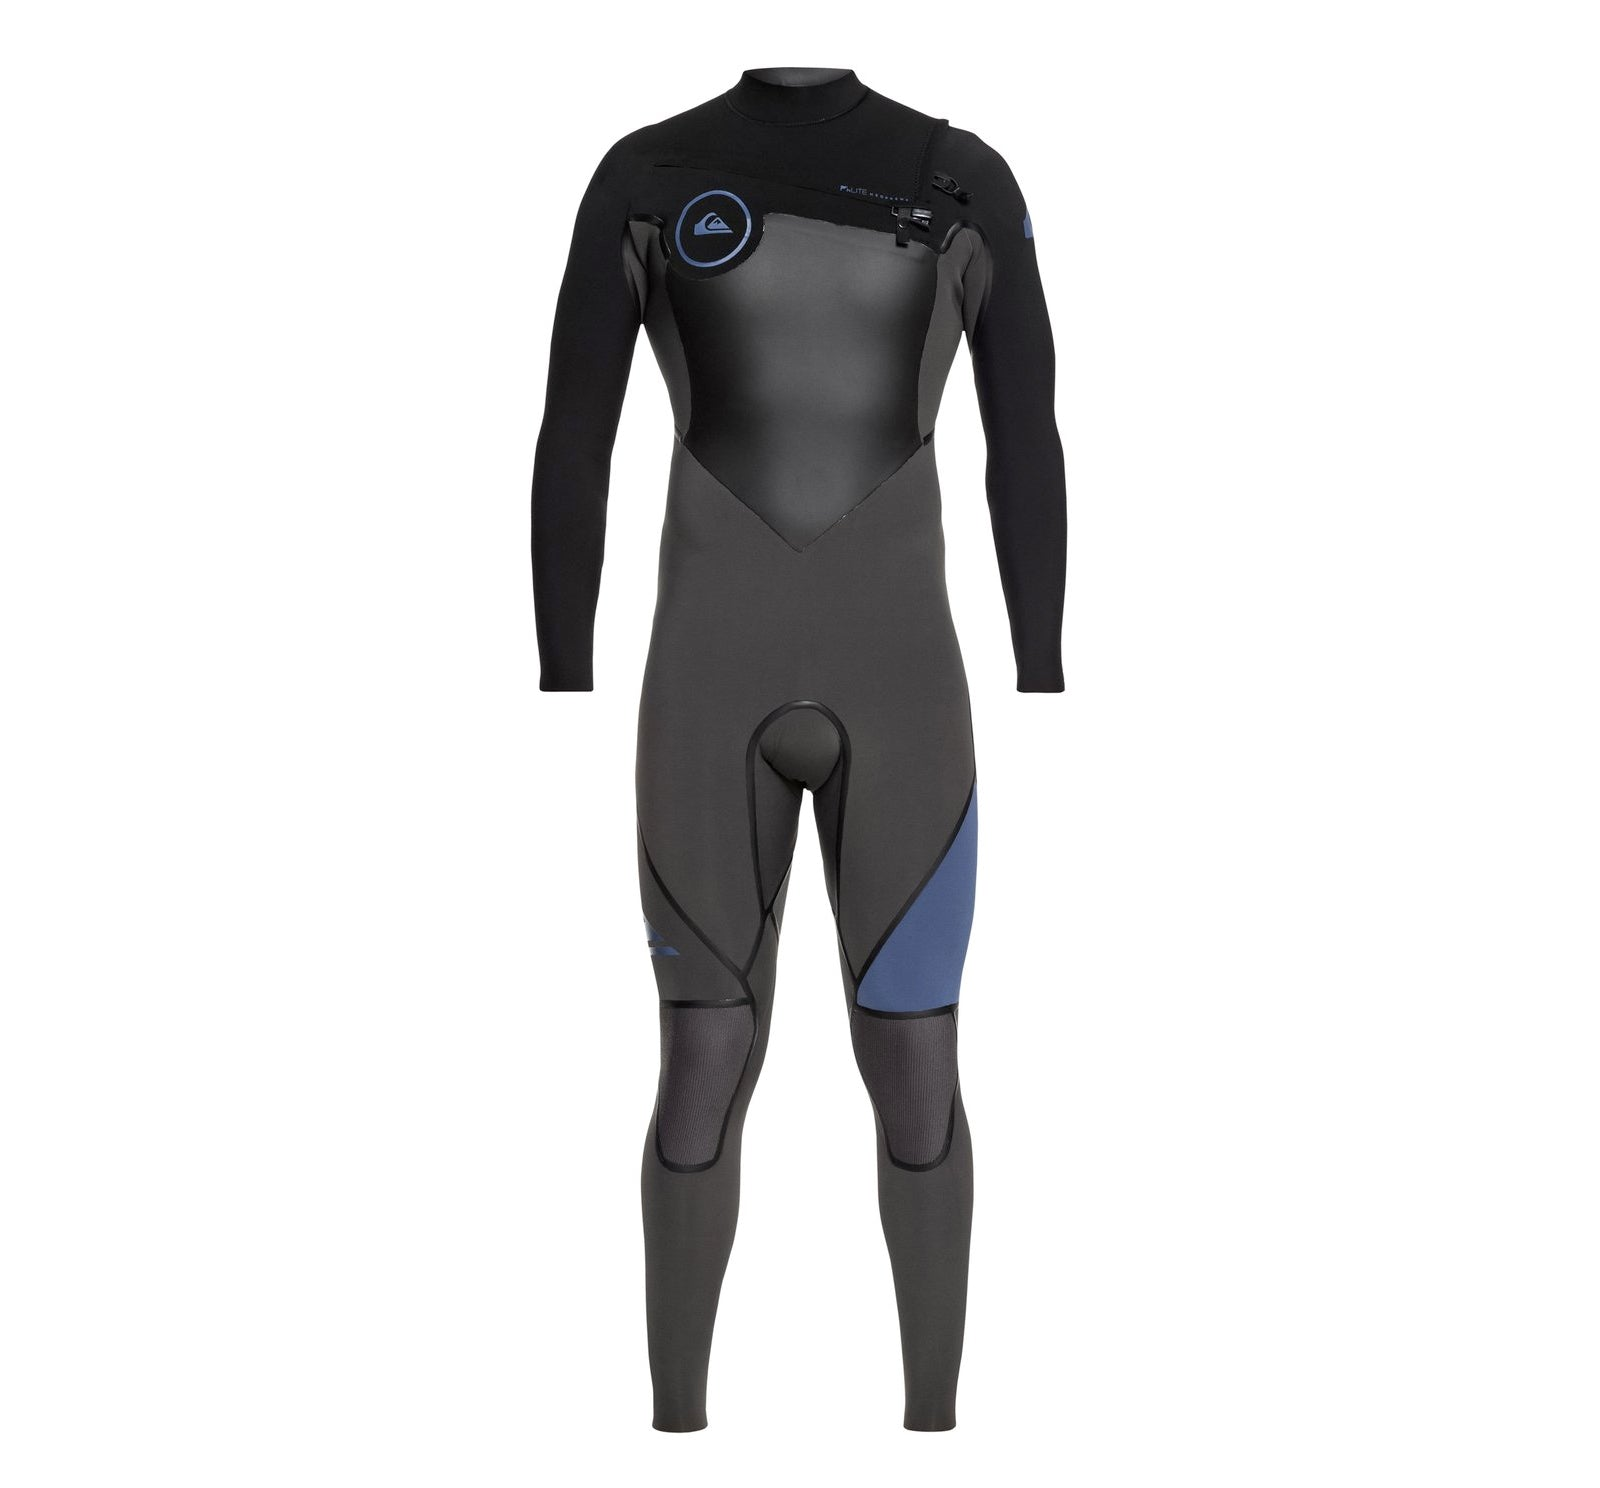 Quiksilver Syncro Plus Chest Zip 4/3 Men's L/S Fullsuit Wetsuit